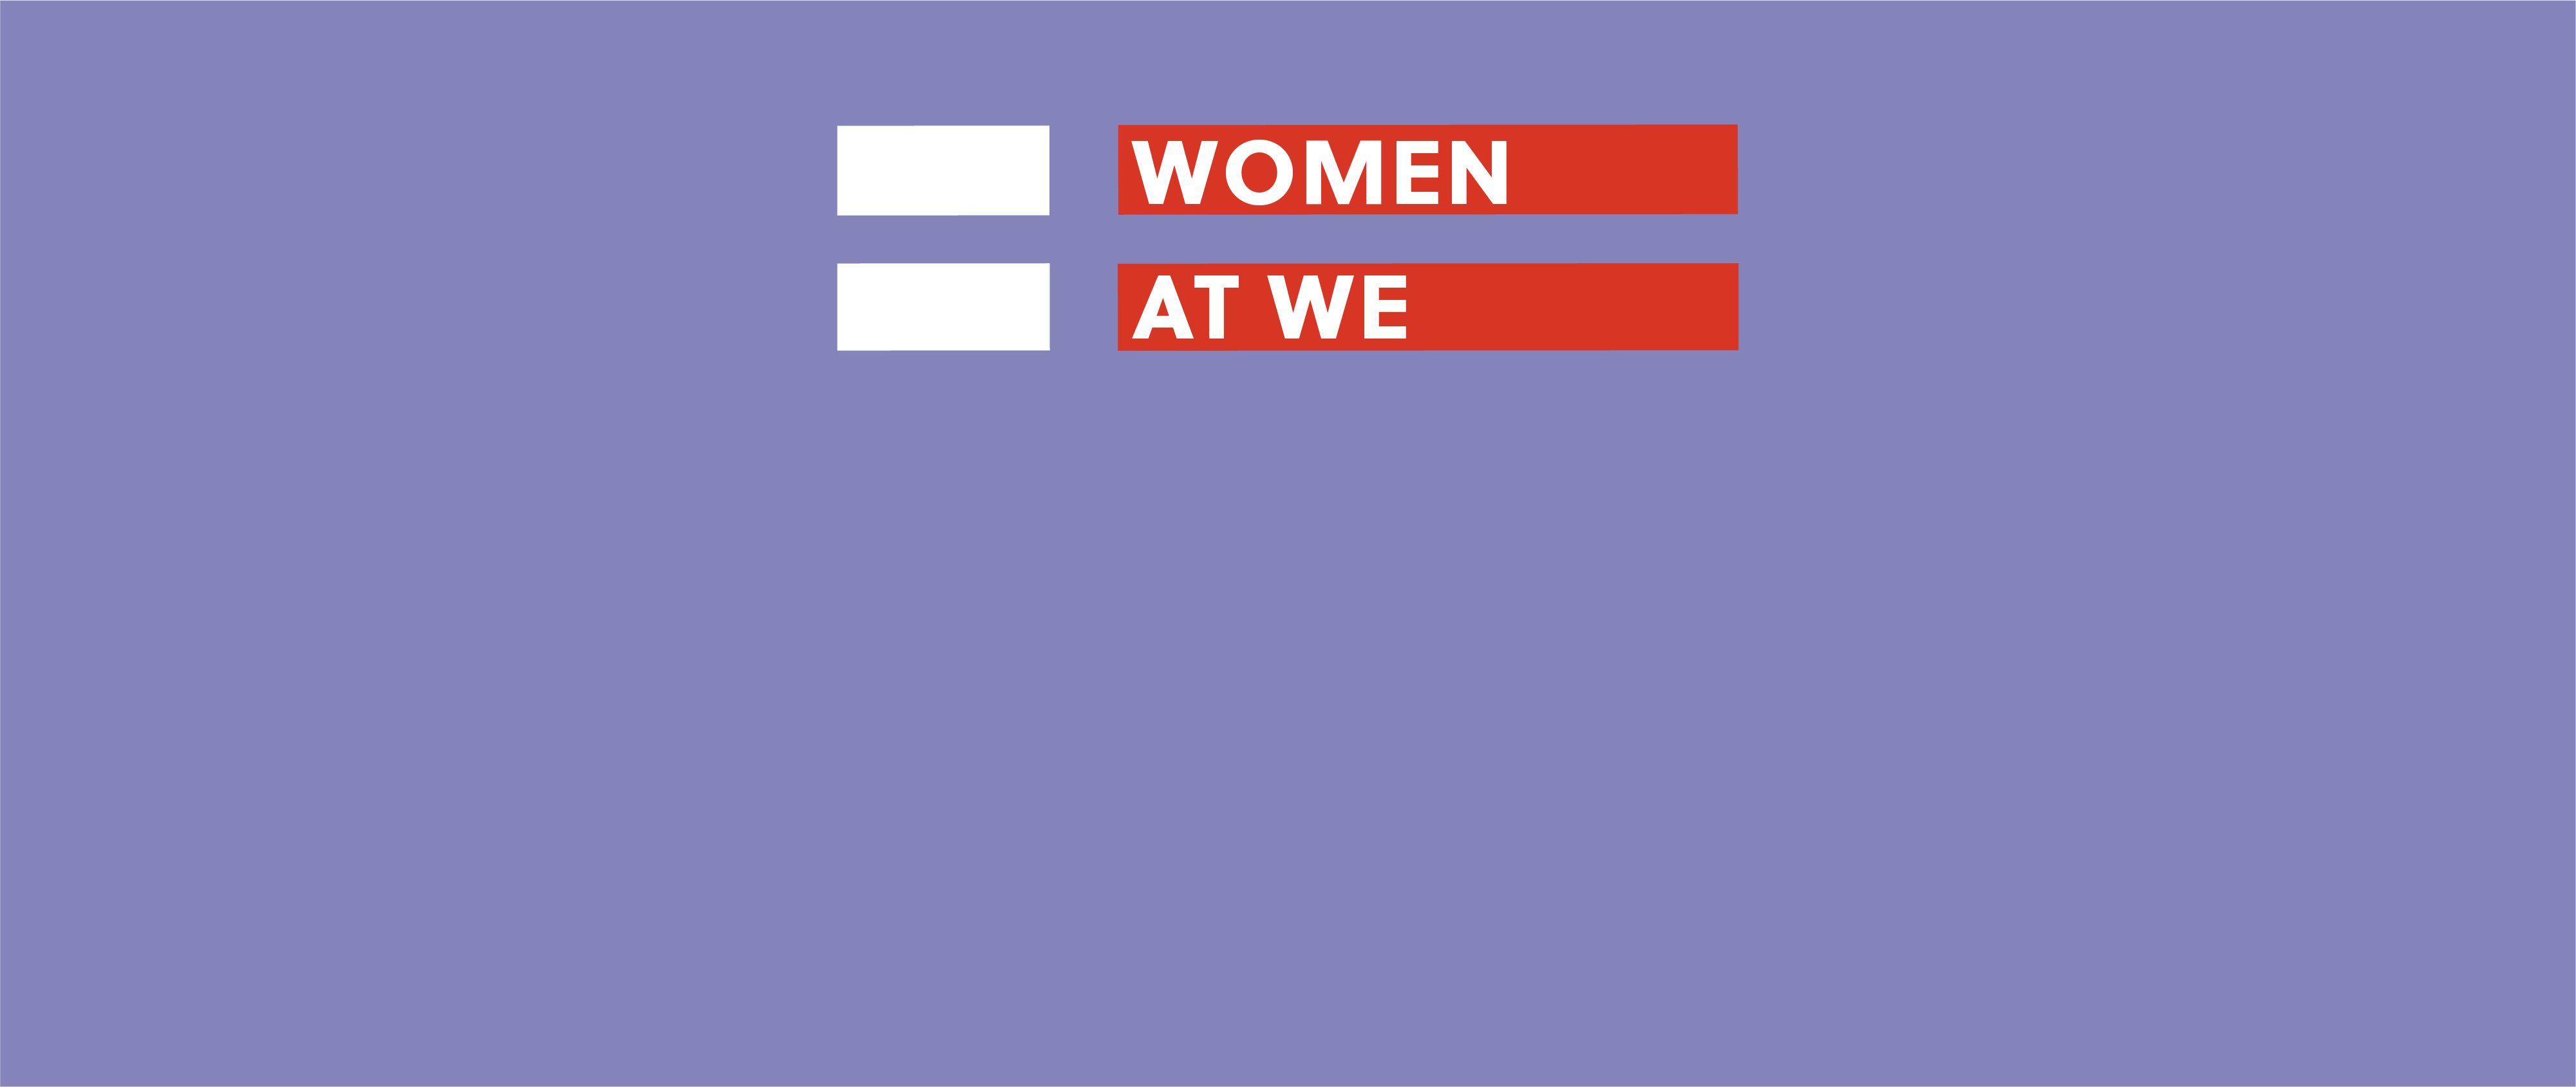 women-of-we_2019_story-banner-desktop.jpg